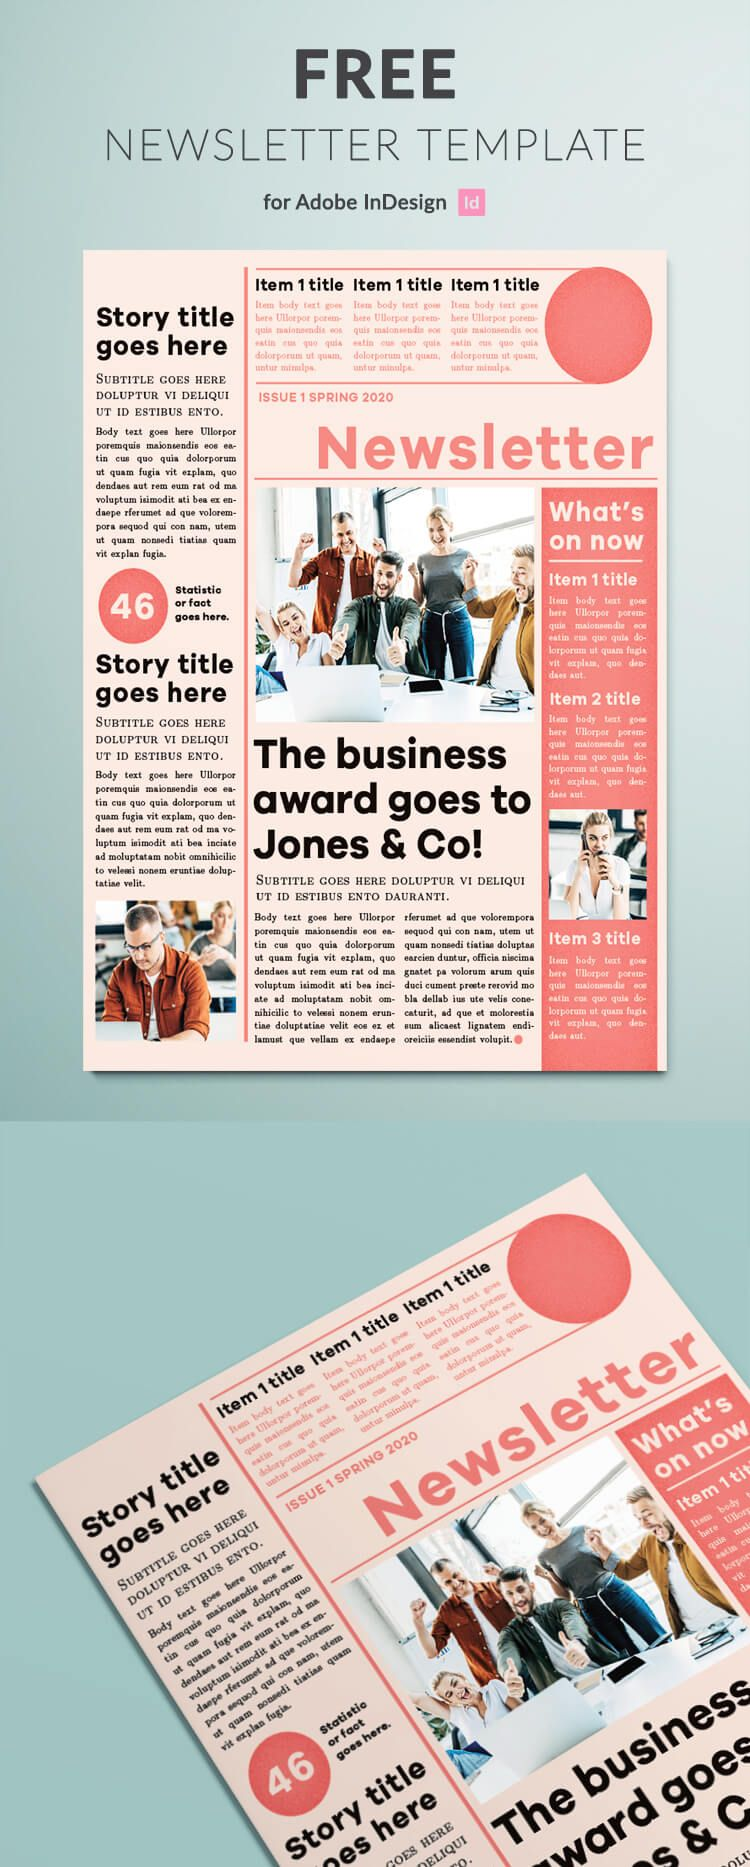 Modern Newsletter Template For Indesign Free Download Newsletter Design Templates Indesign Templates Free Indesign Free